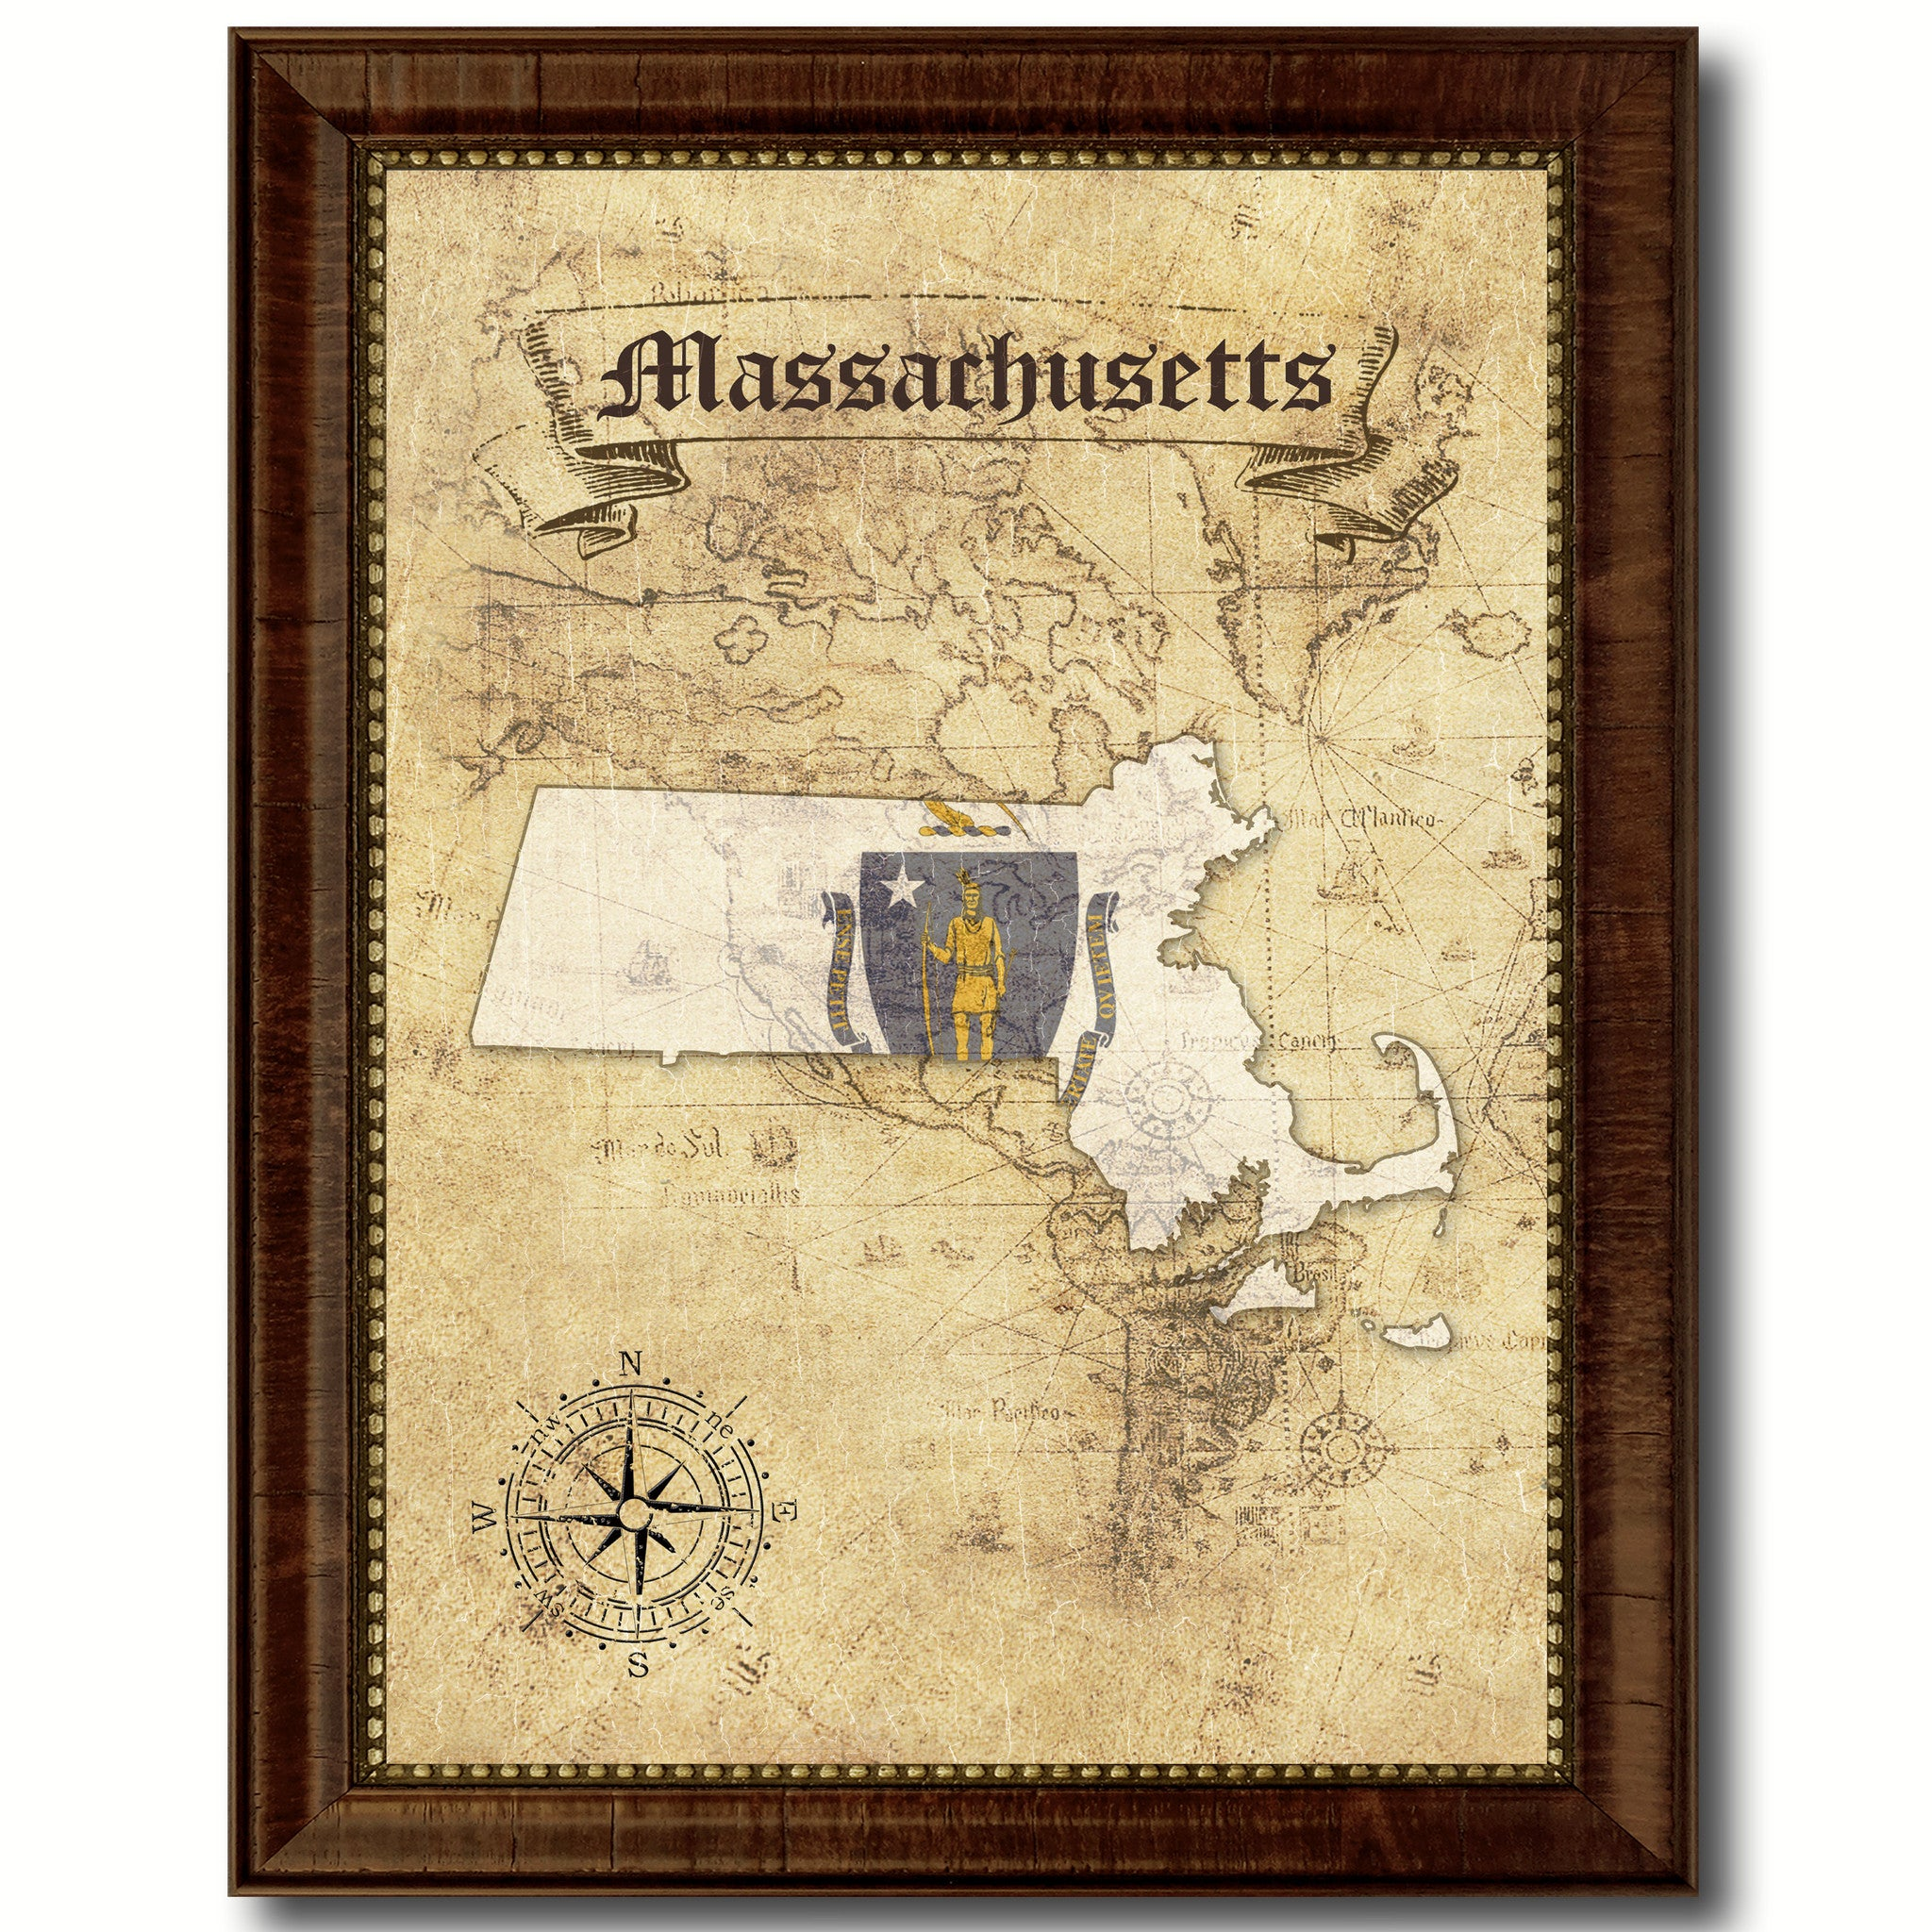 Massachusetts State Vintage Map Home Decor Wall Art Office Decoration Gift Ideas